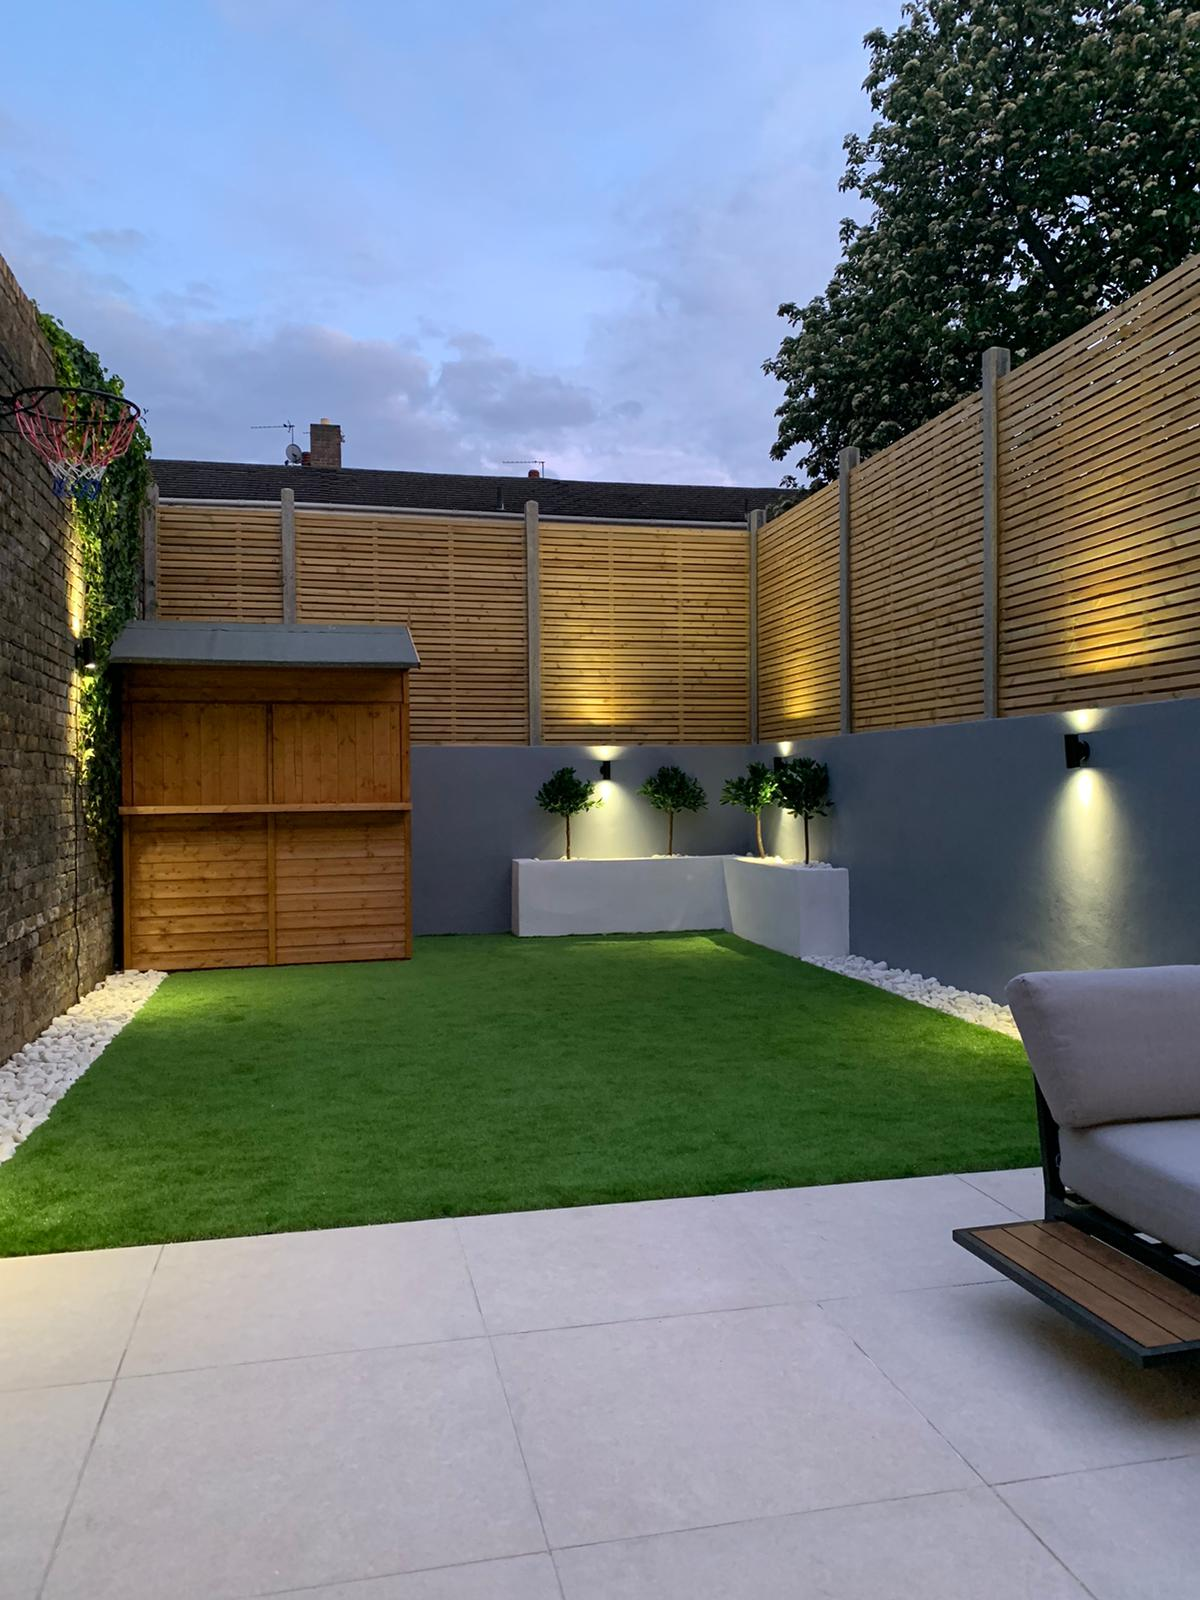 picture of backyard house extension at dusk with lights on